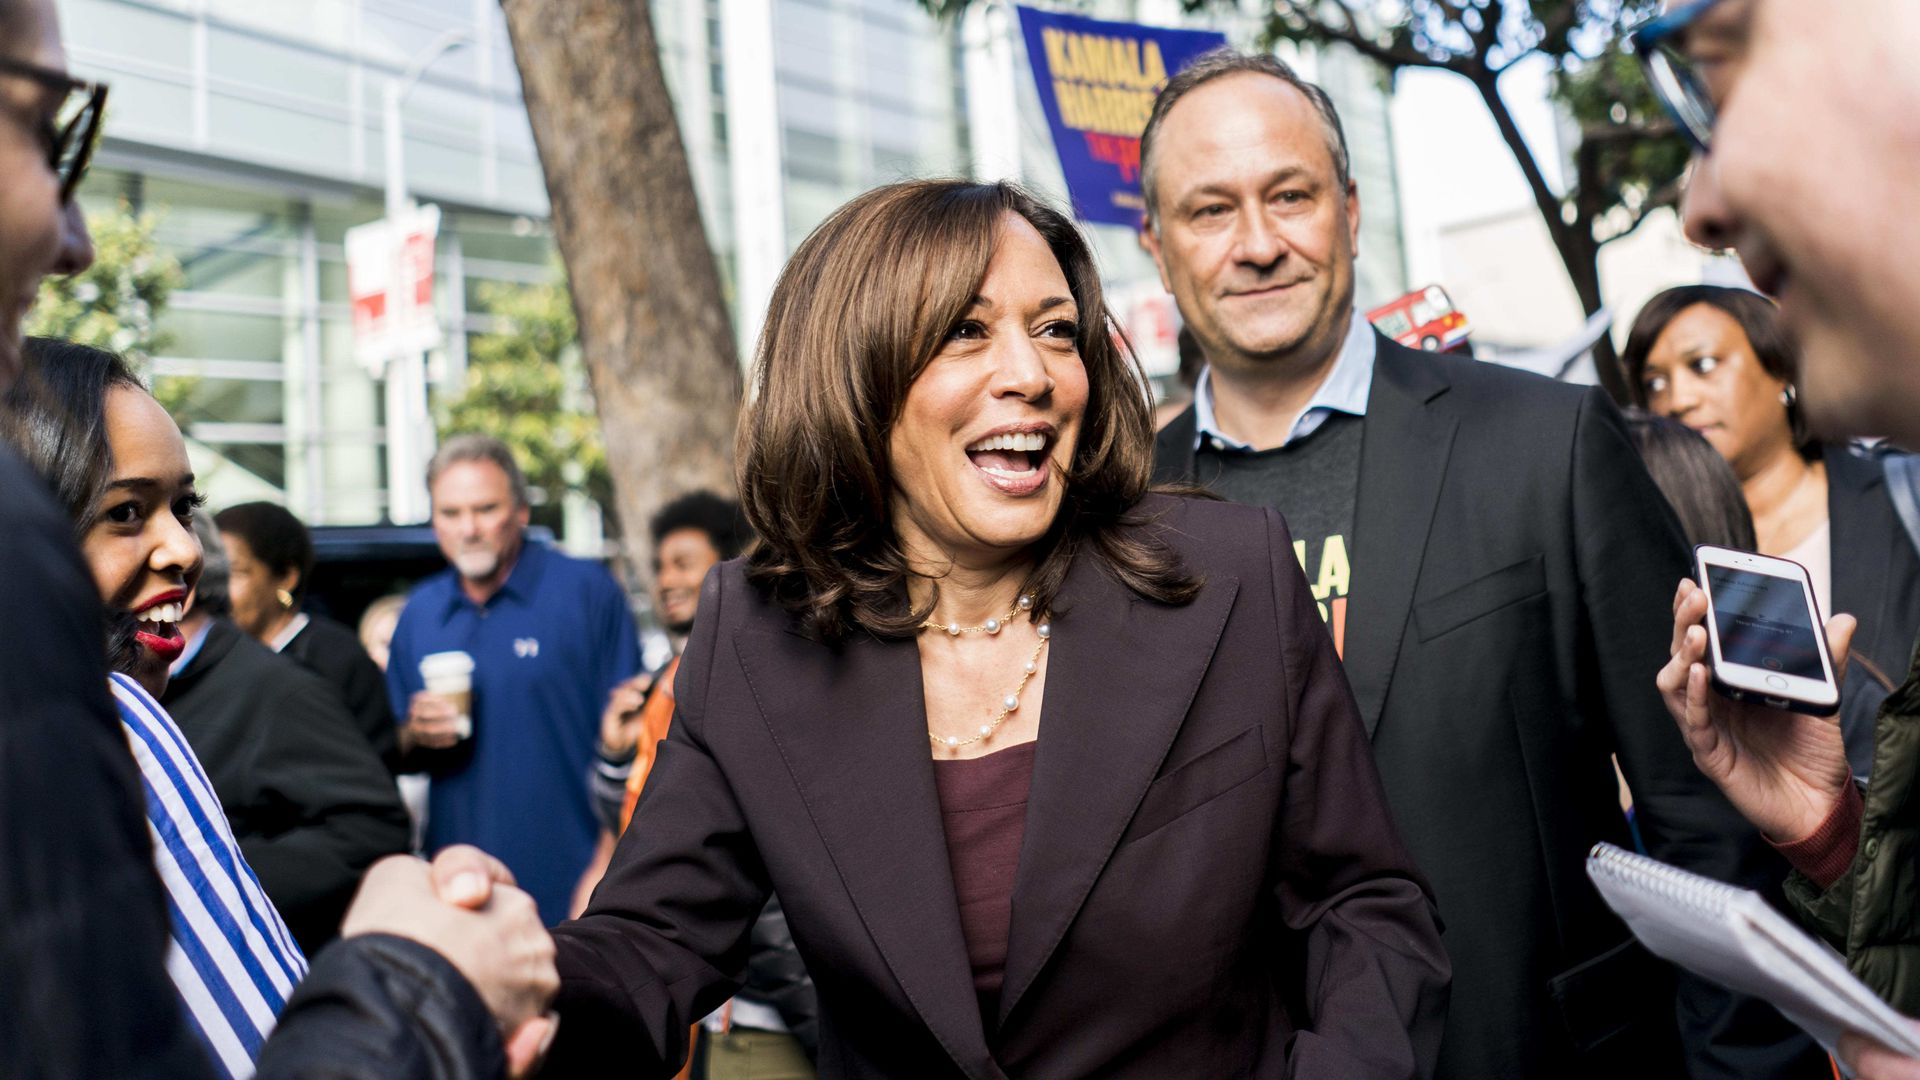 Sen. Kamala Harris campaigning for the 2020 presidency